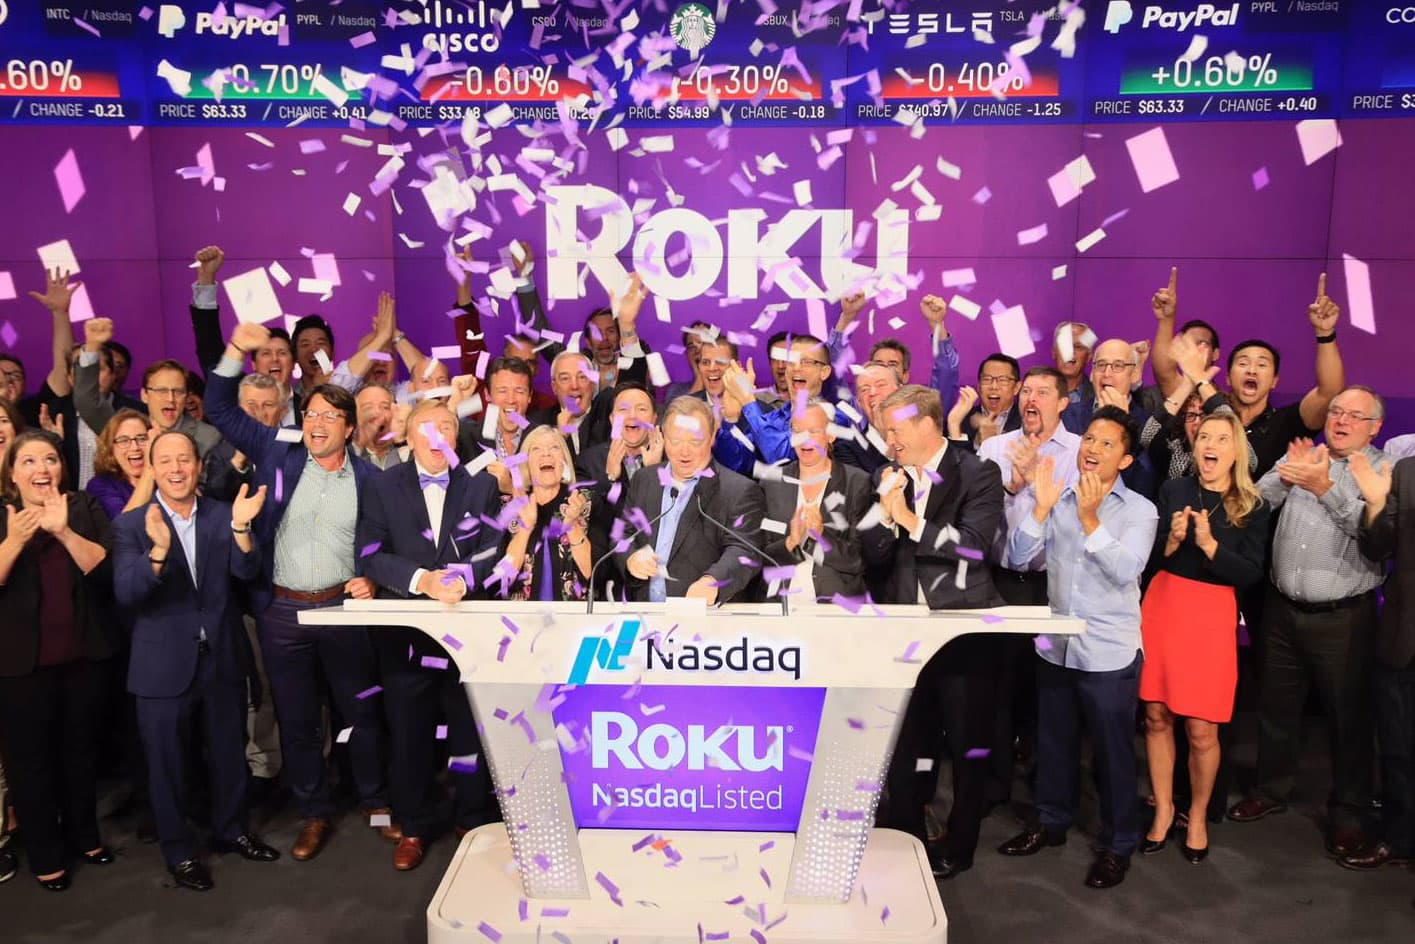 Roku plans to grow ad business